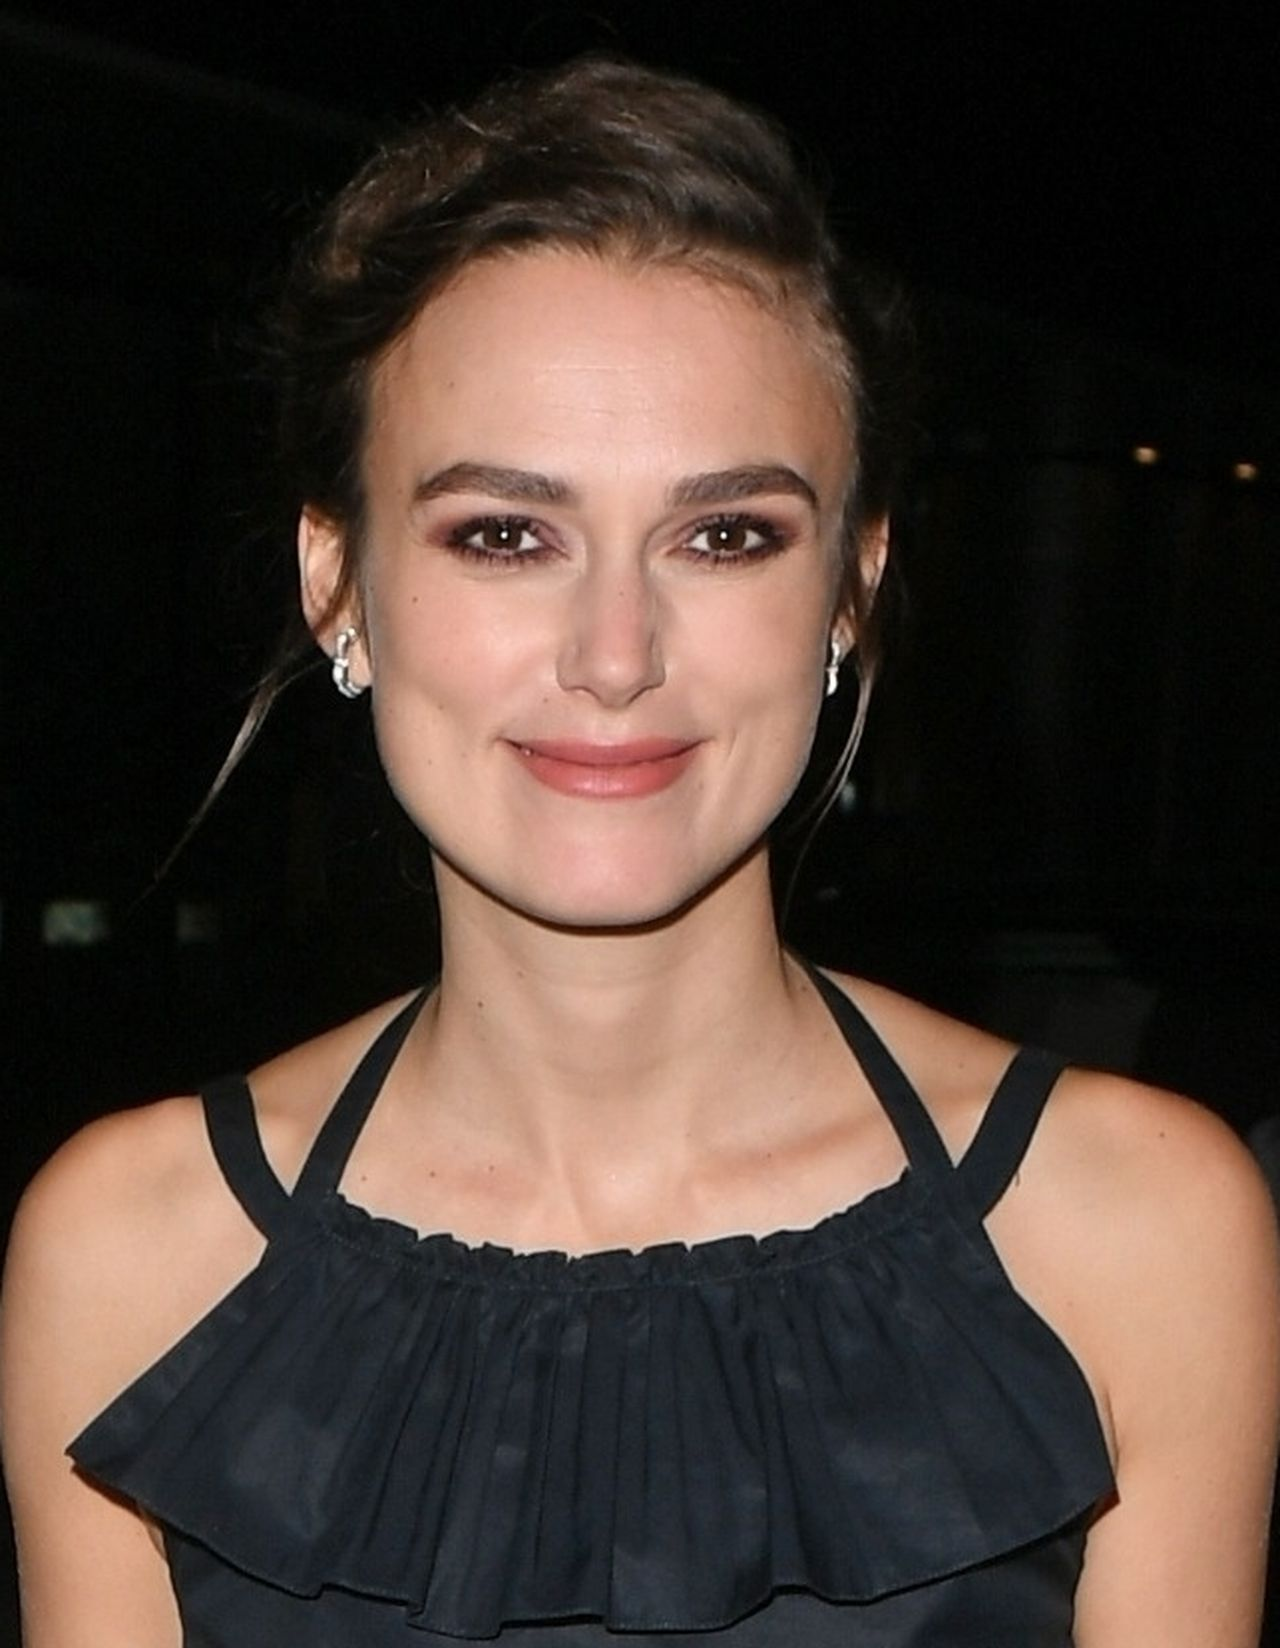 Keira Knightly at the Colette film afterparty / PECK / BACKGRID , kod: